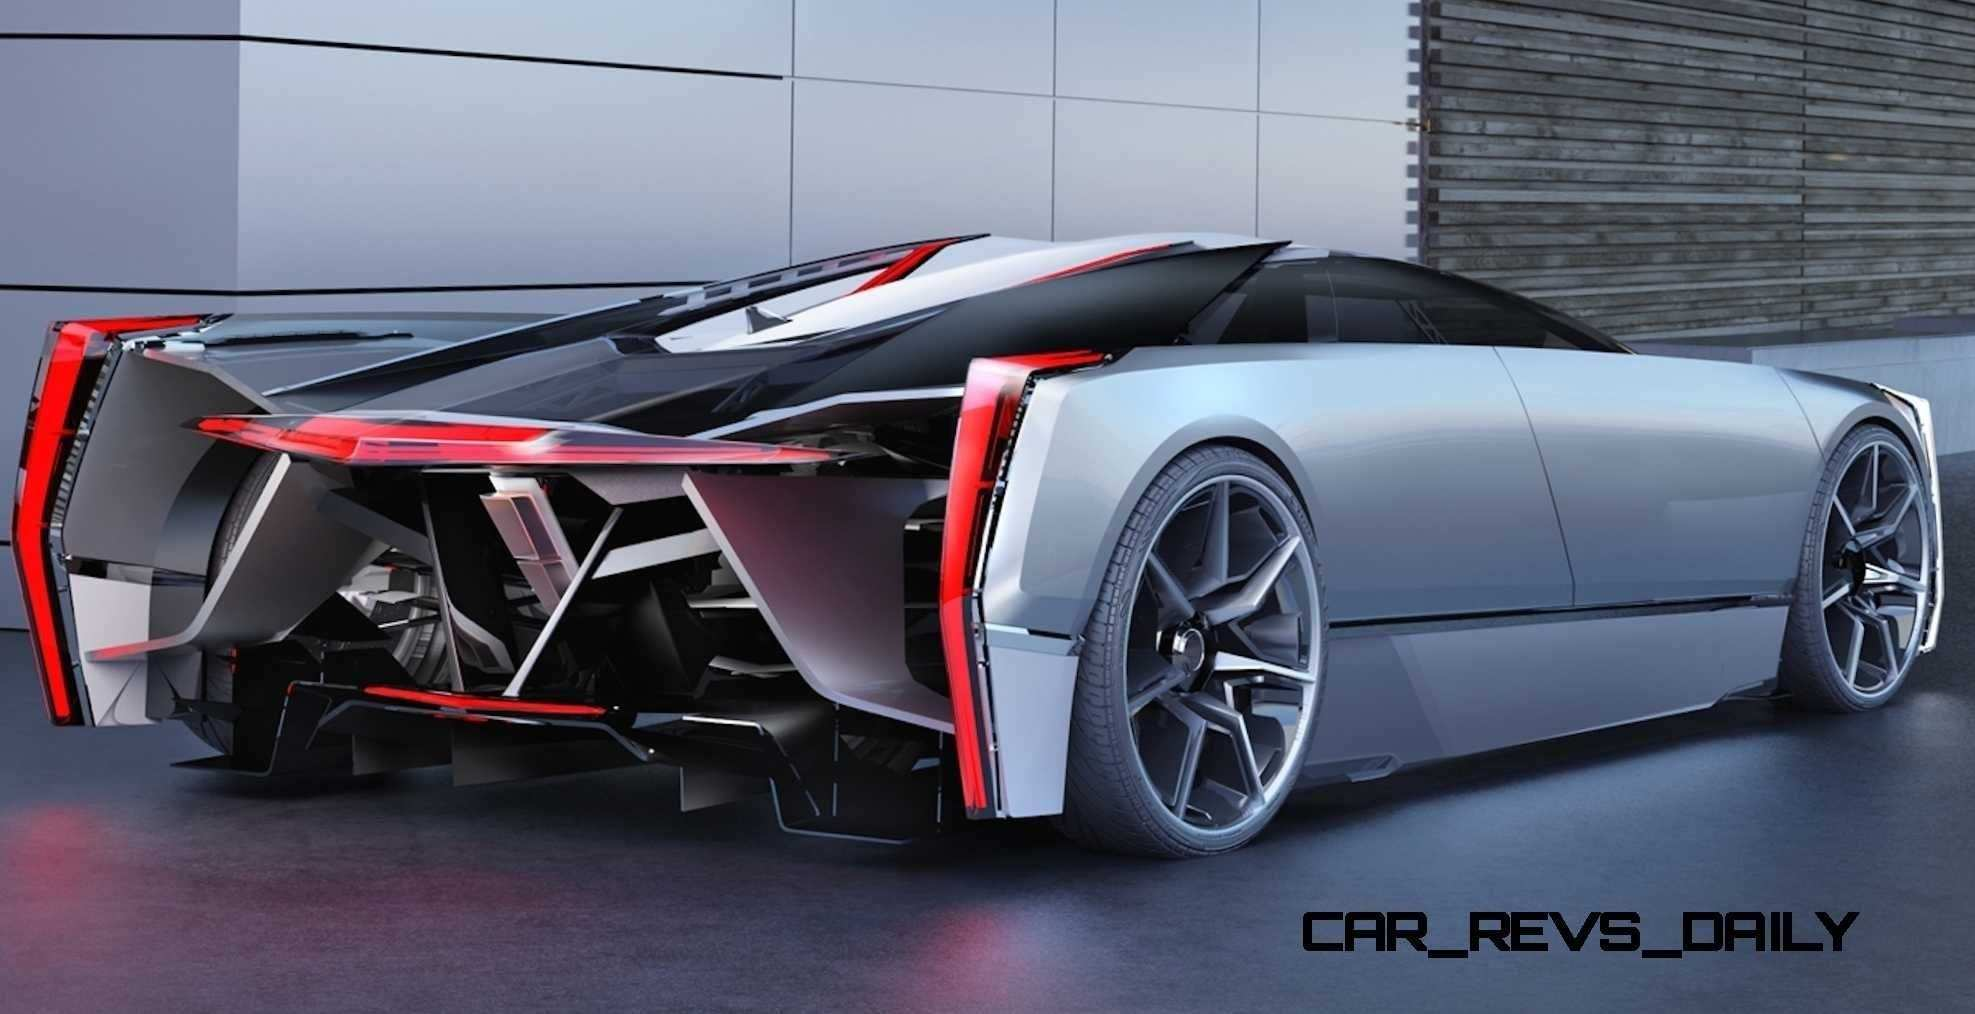 85 Best Review Cadillac Supercar 2020 First Drive for Cadillac Supercar 2020